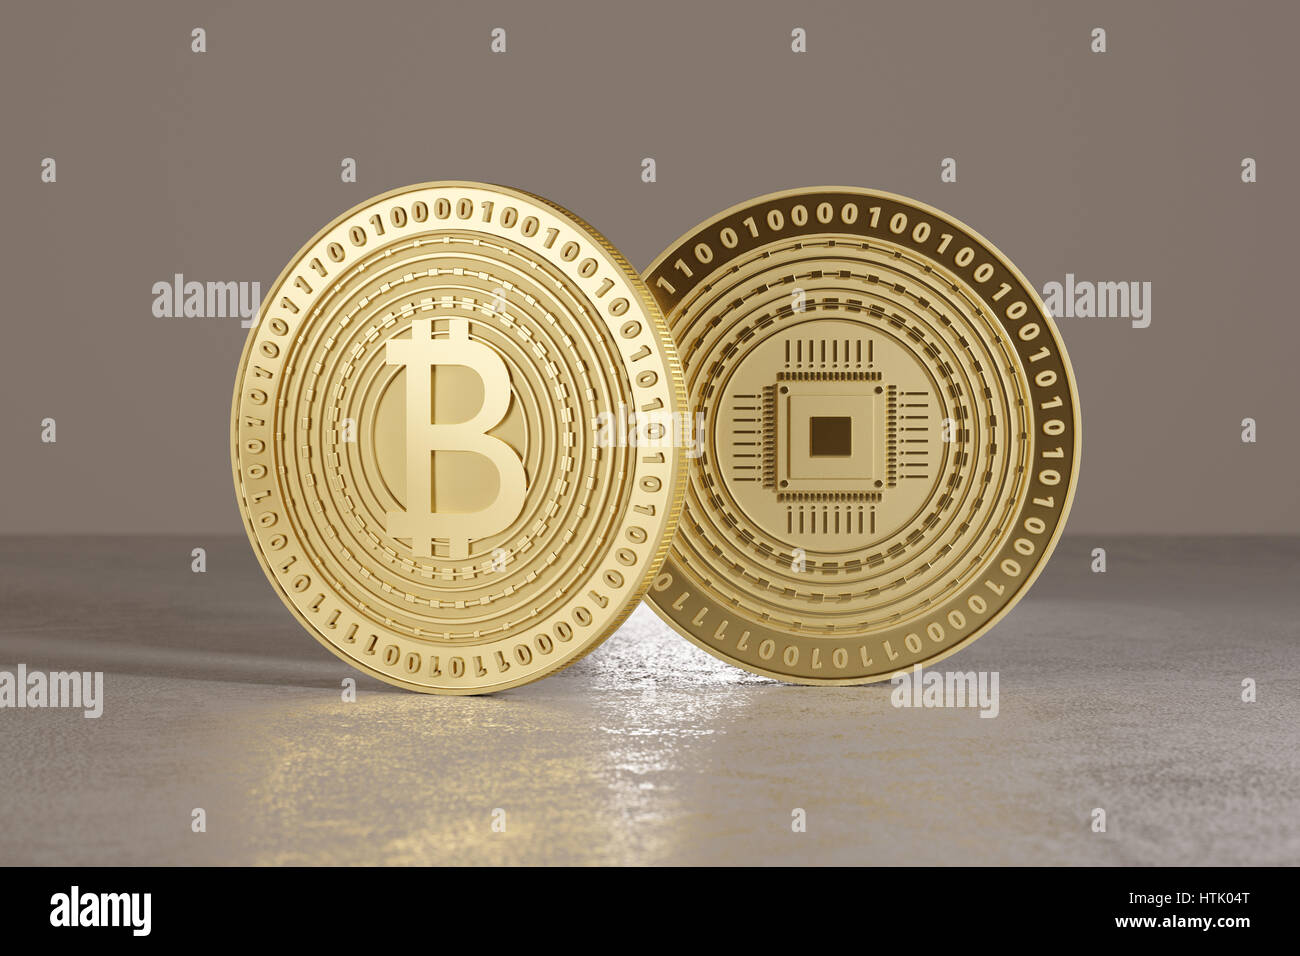 Two shiny golden bitcoins standing on metal floor as concept for financial technology and crypto-currency - Stock Image